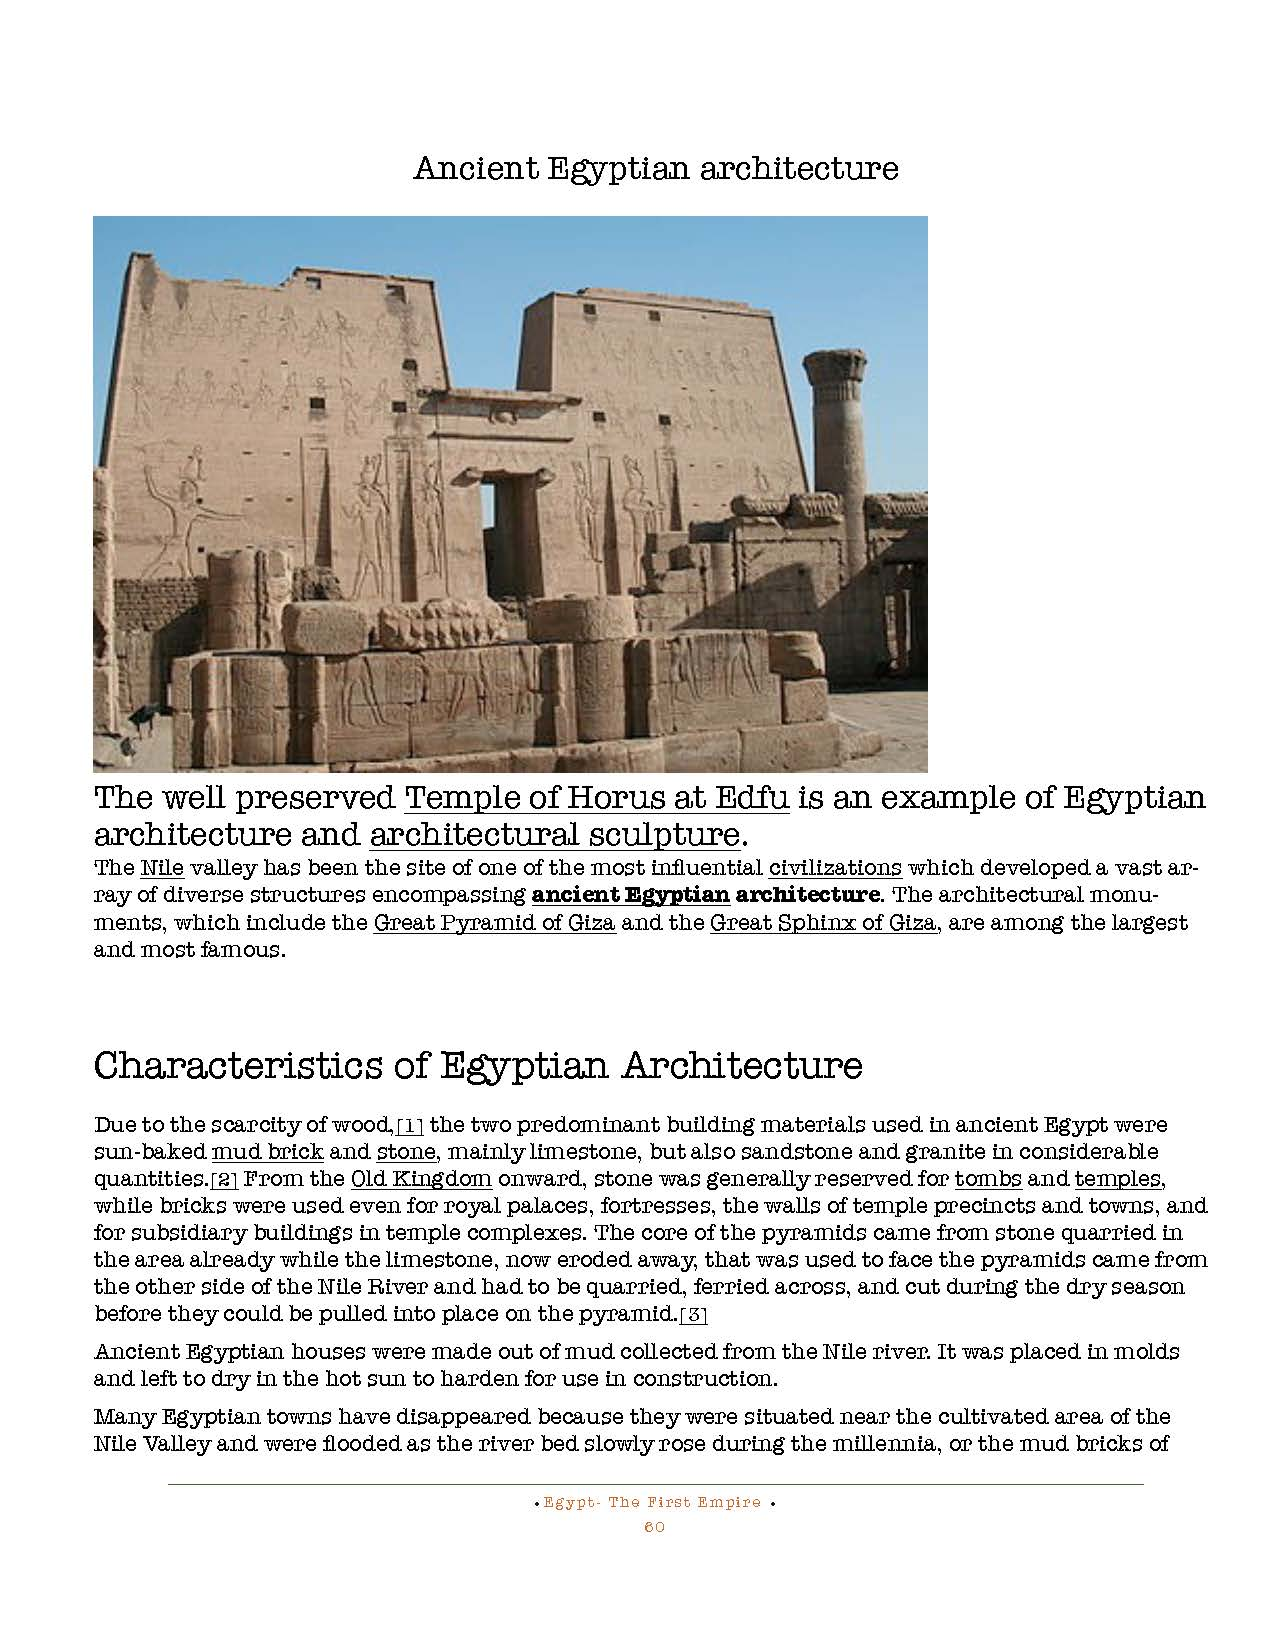 HOCE- Egypt  (First Empire) Notes_Page_060.jpg